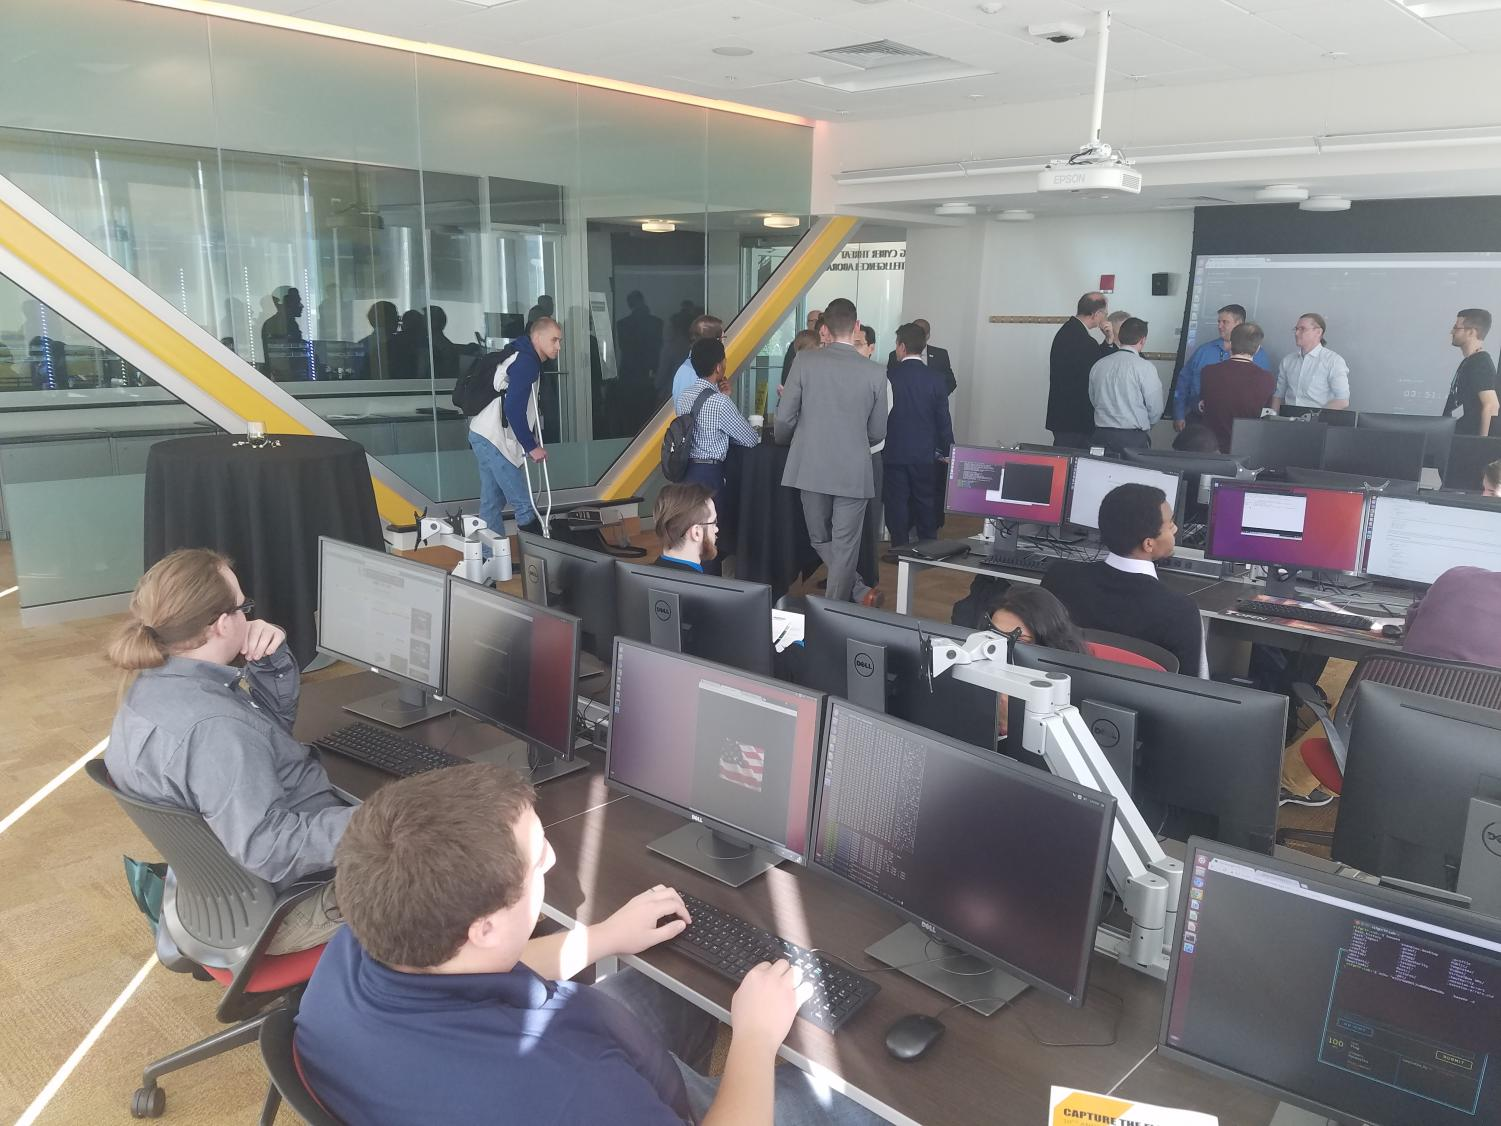 Students work in the JRG Cybersecurity lab.